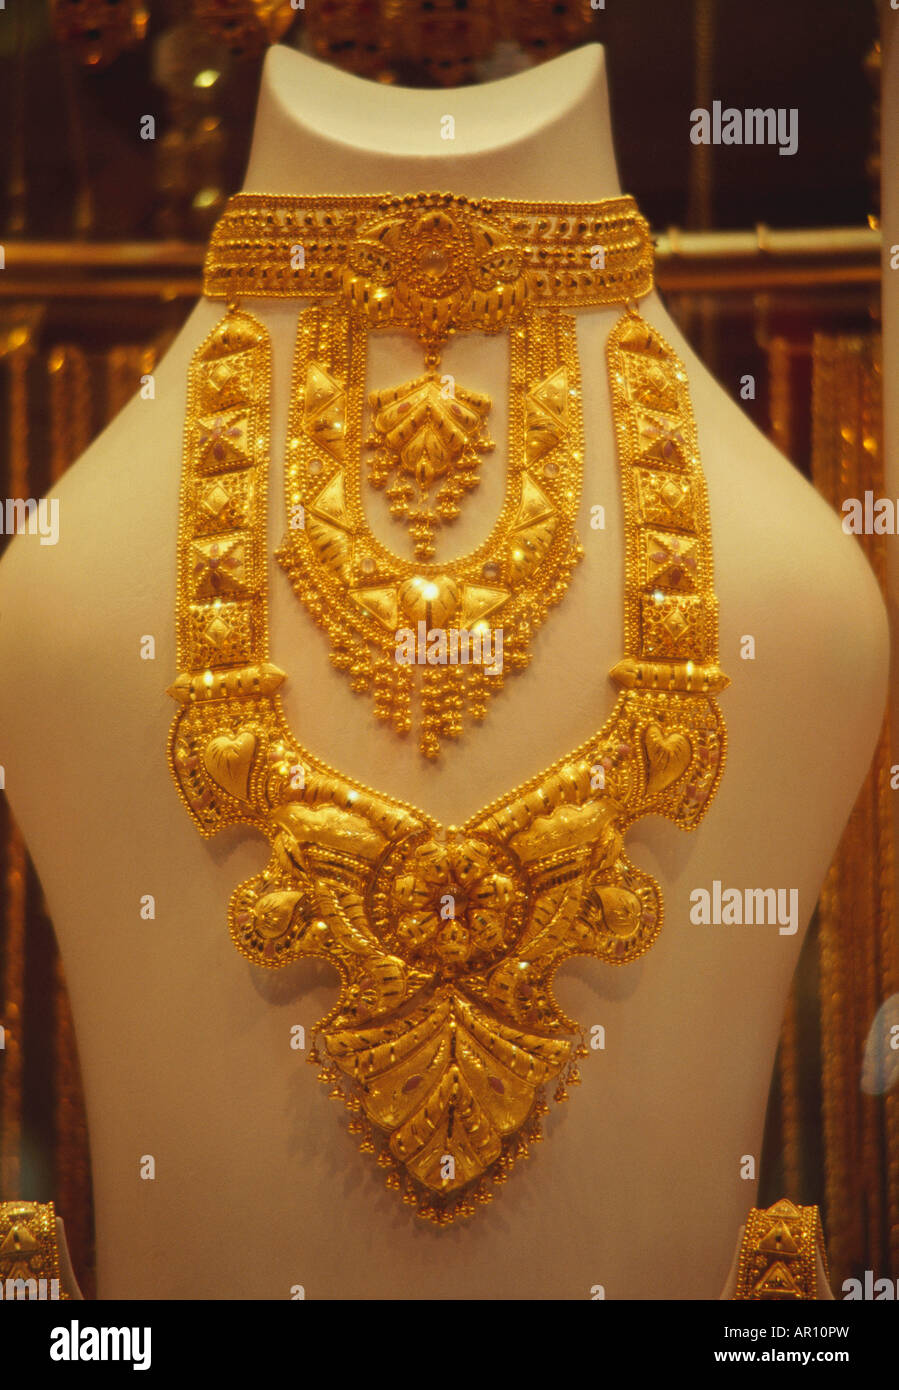 Close up of an exclusive golden necklace. - Stock Image